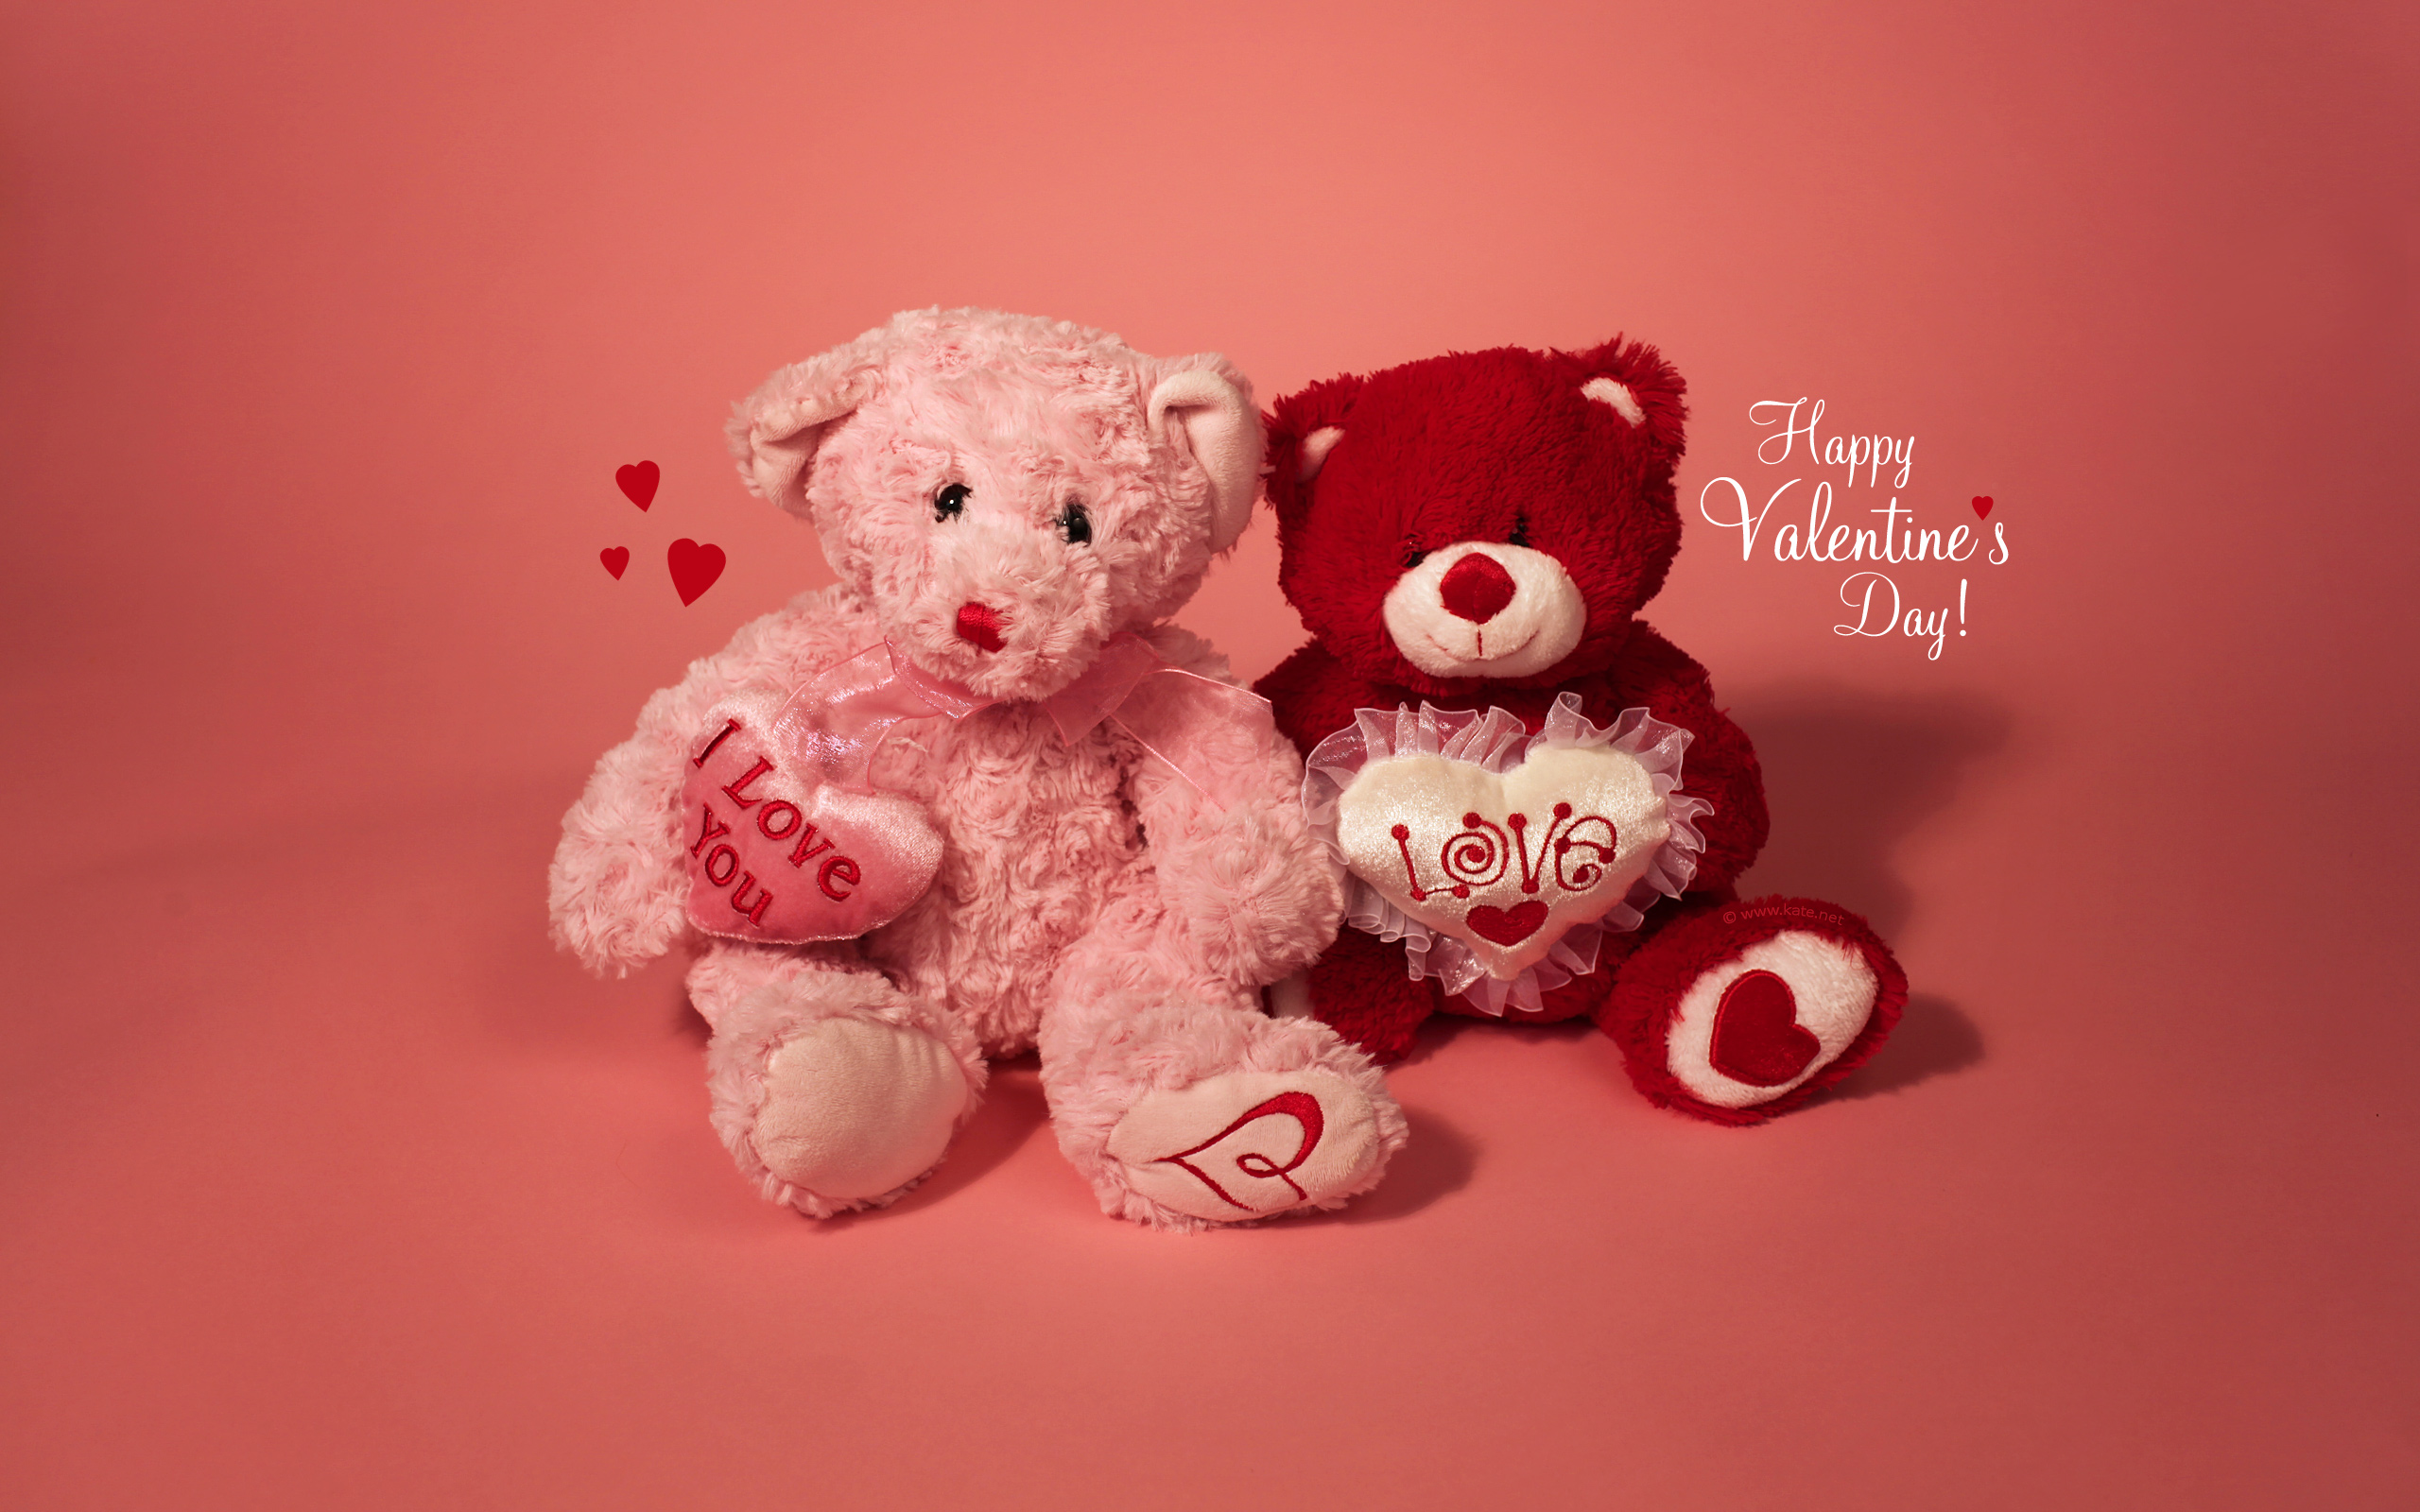 Holiday - Valentine's Day  - Teddy Bear - Love Wallpaper